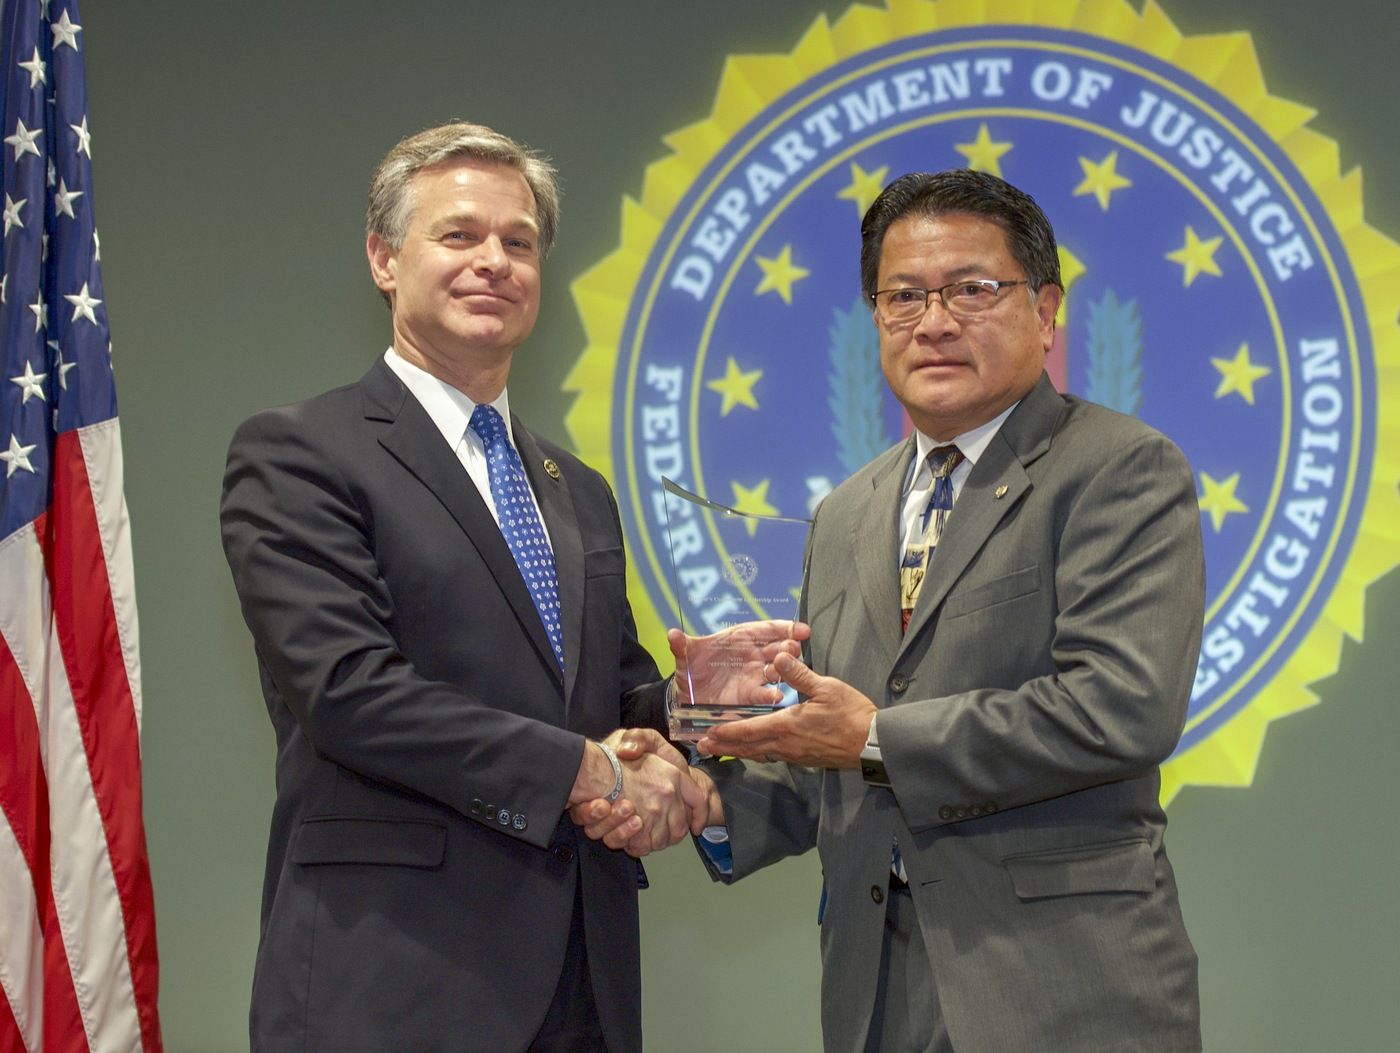 FBI Director Christopher Wray presents Seattle Division recipient Son Michael Pham with the Director's Community Leadership Award (DCLA) at a ceremony at FBI Headquarters on May 3, 2019.